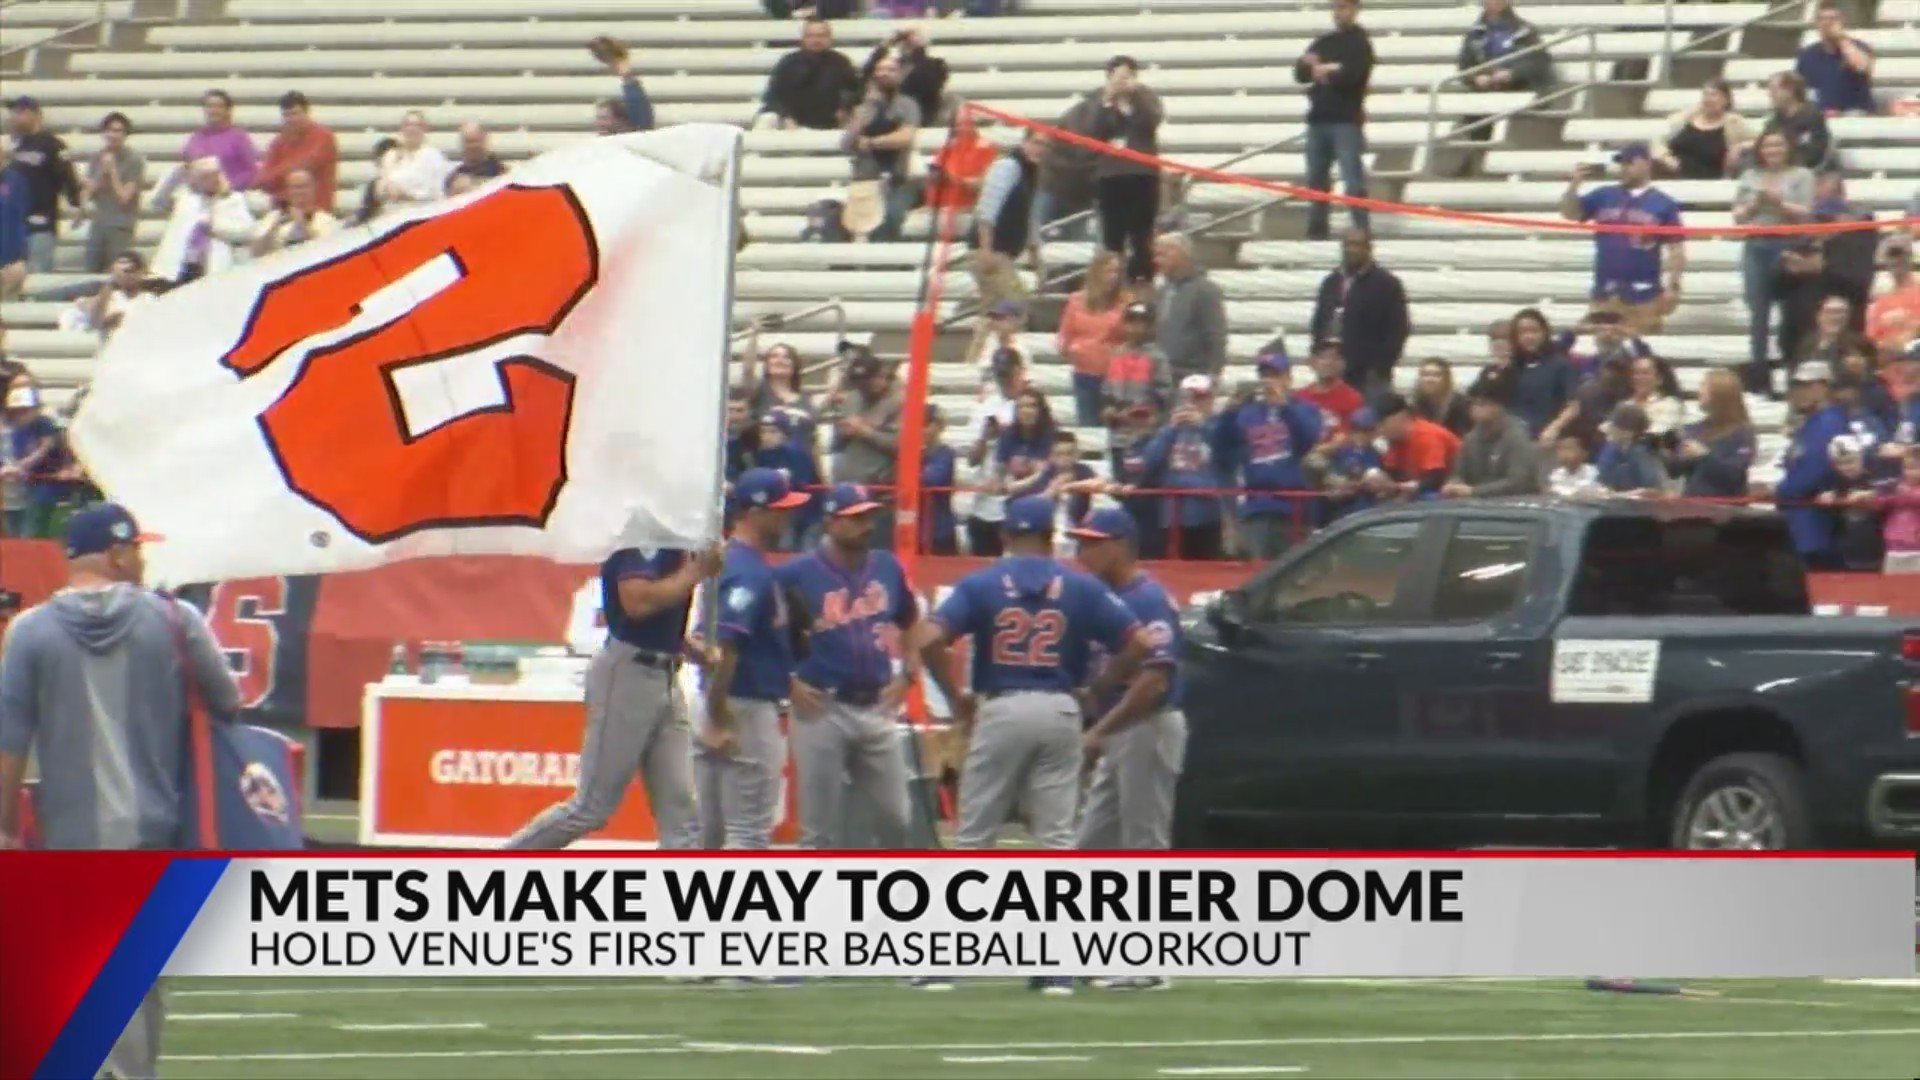 Mets hold workout at Carrier Dome